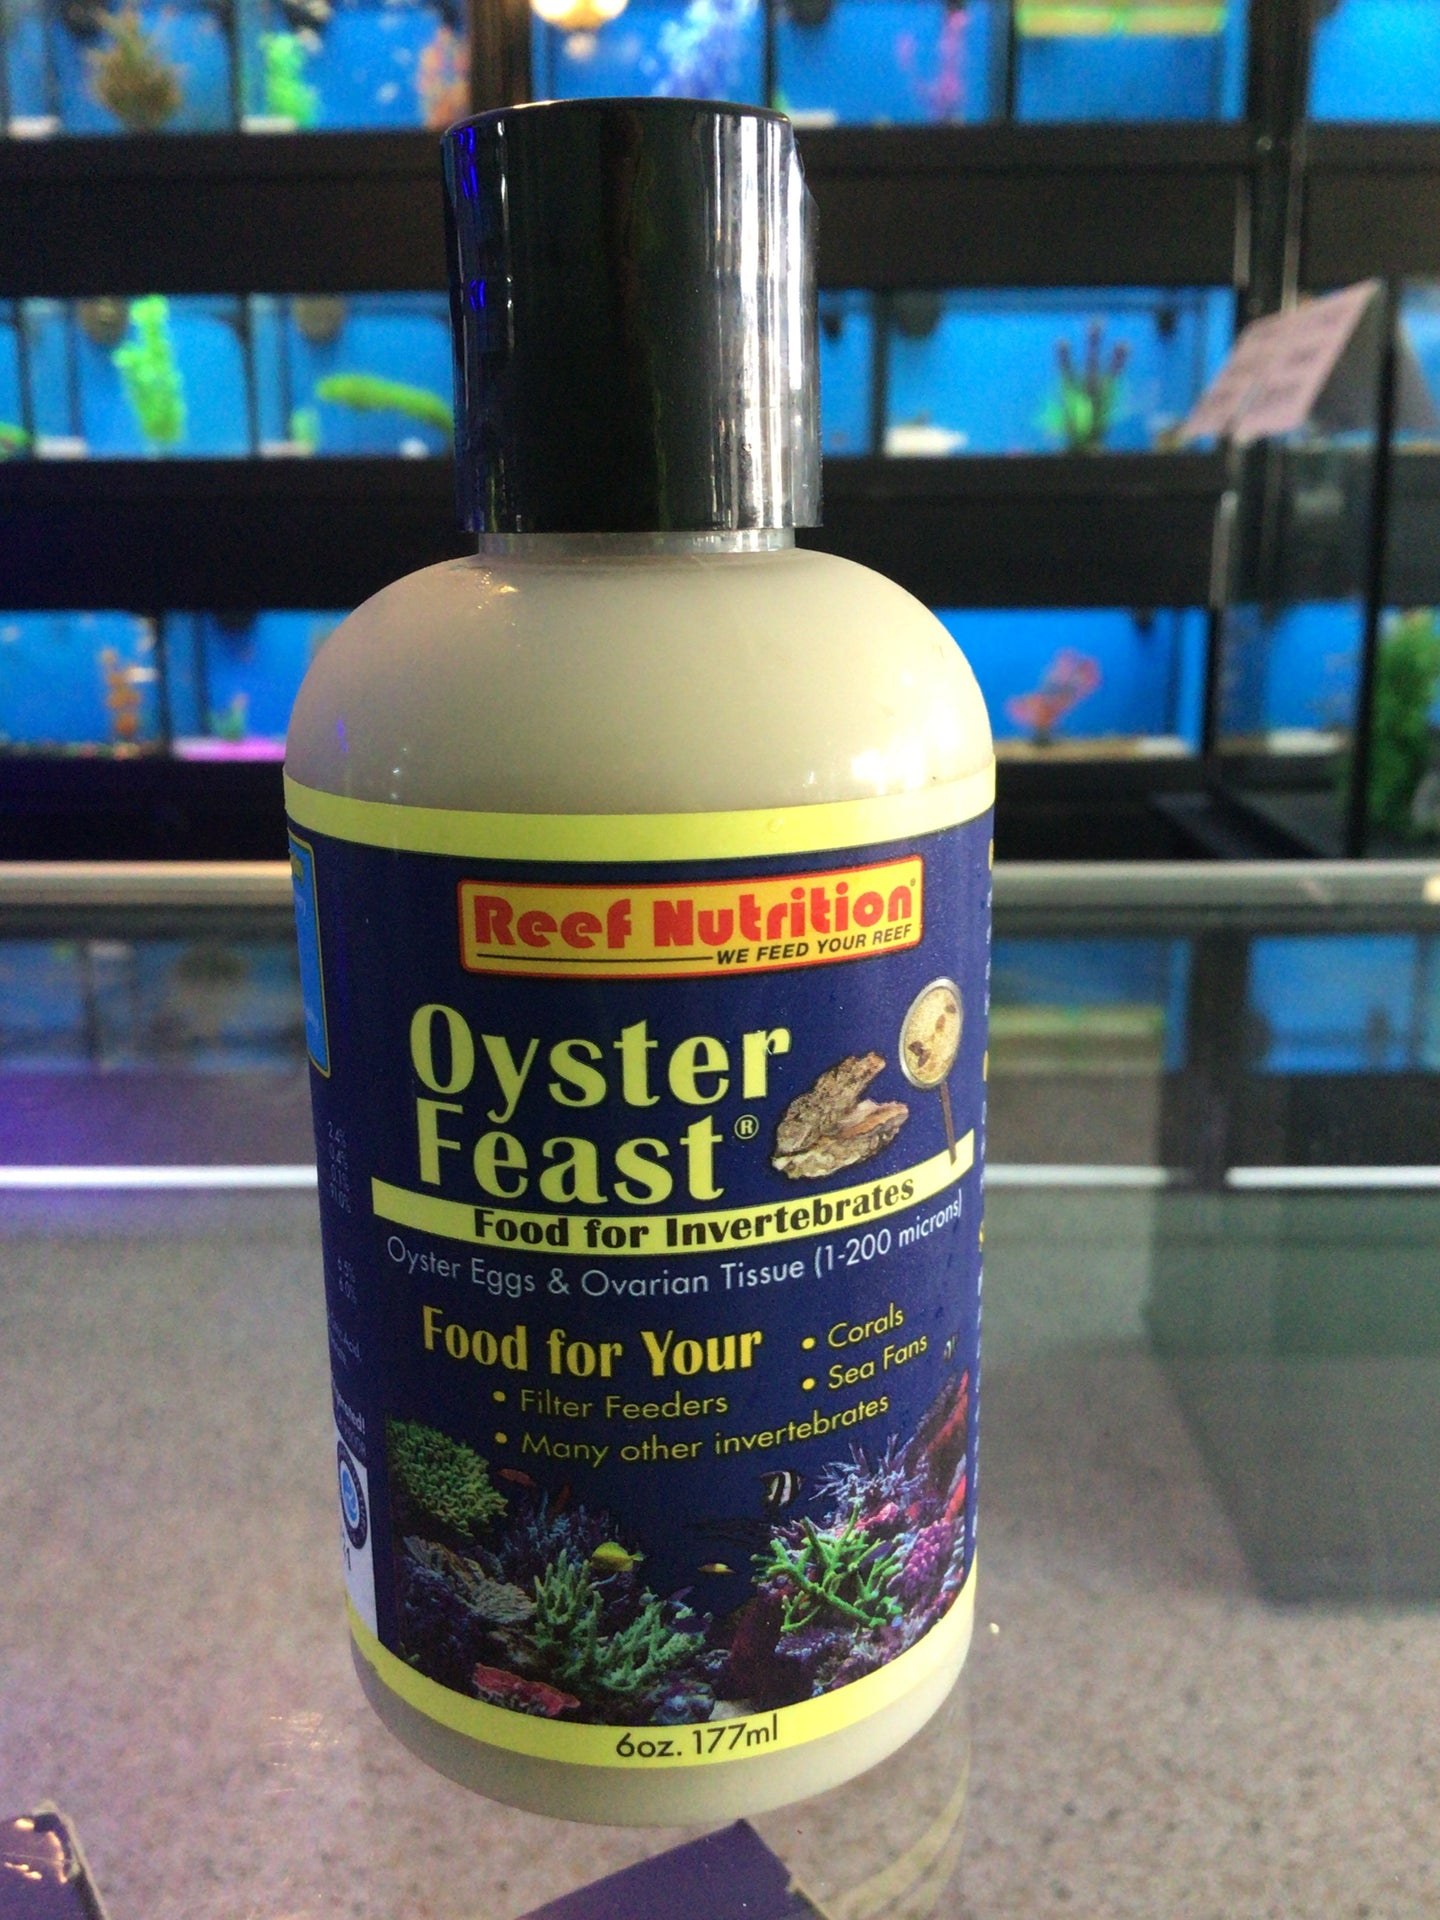 Reef nutrition oyster feast 6 oz